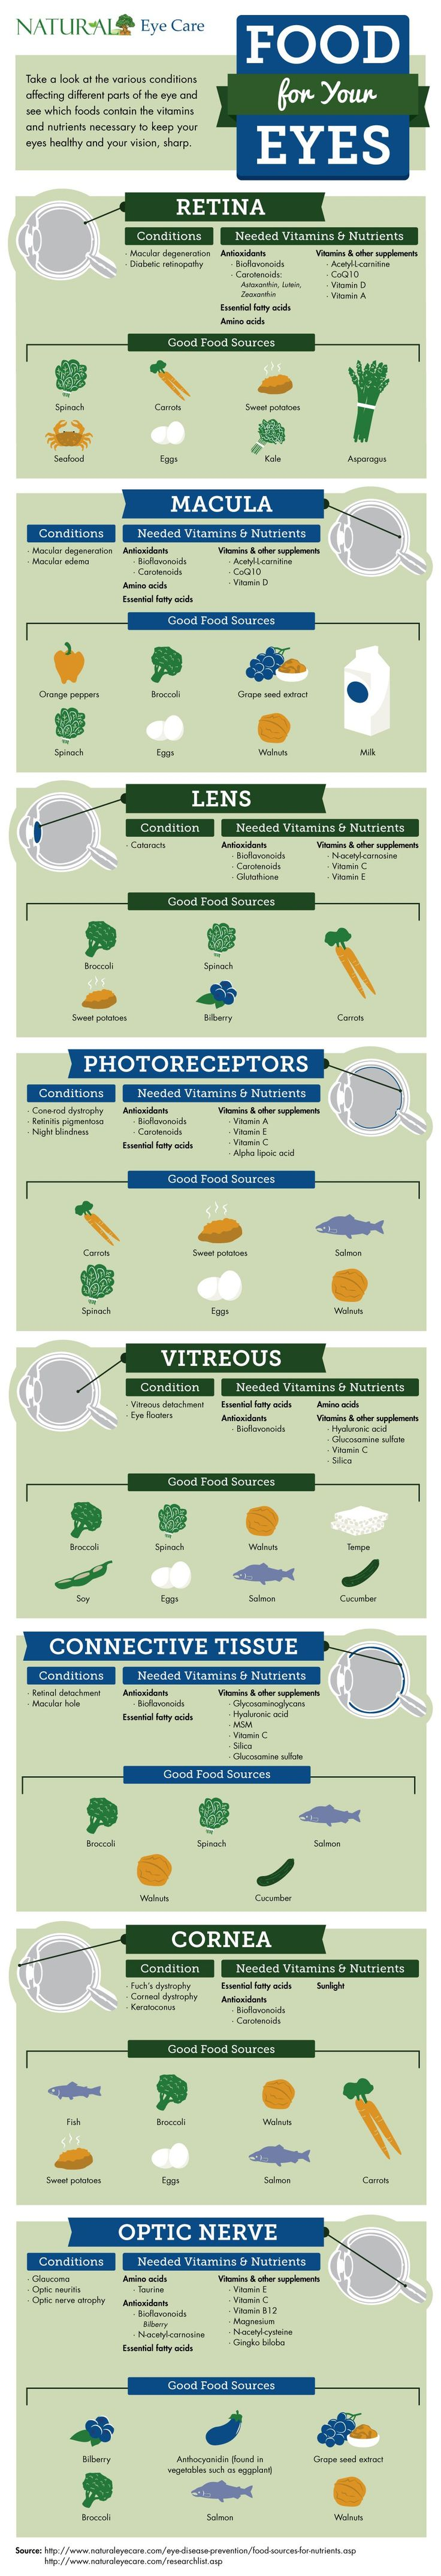 Food for your Eyes (Infographic) and other vision news and information from NaturalEyeCare